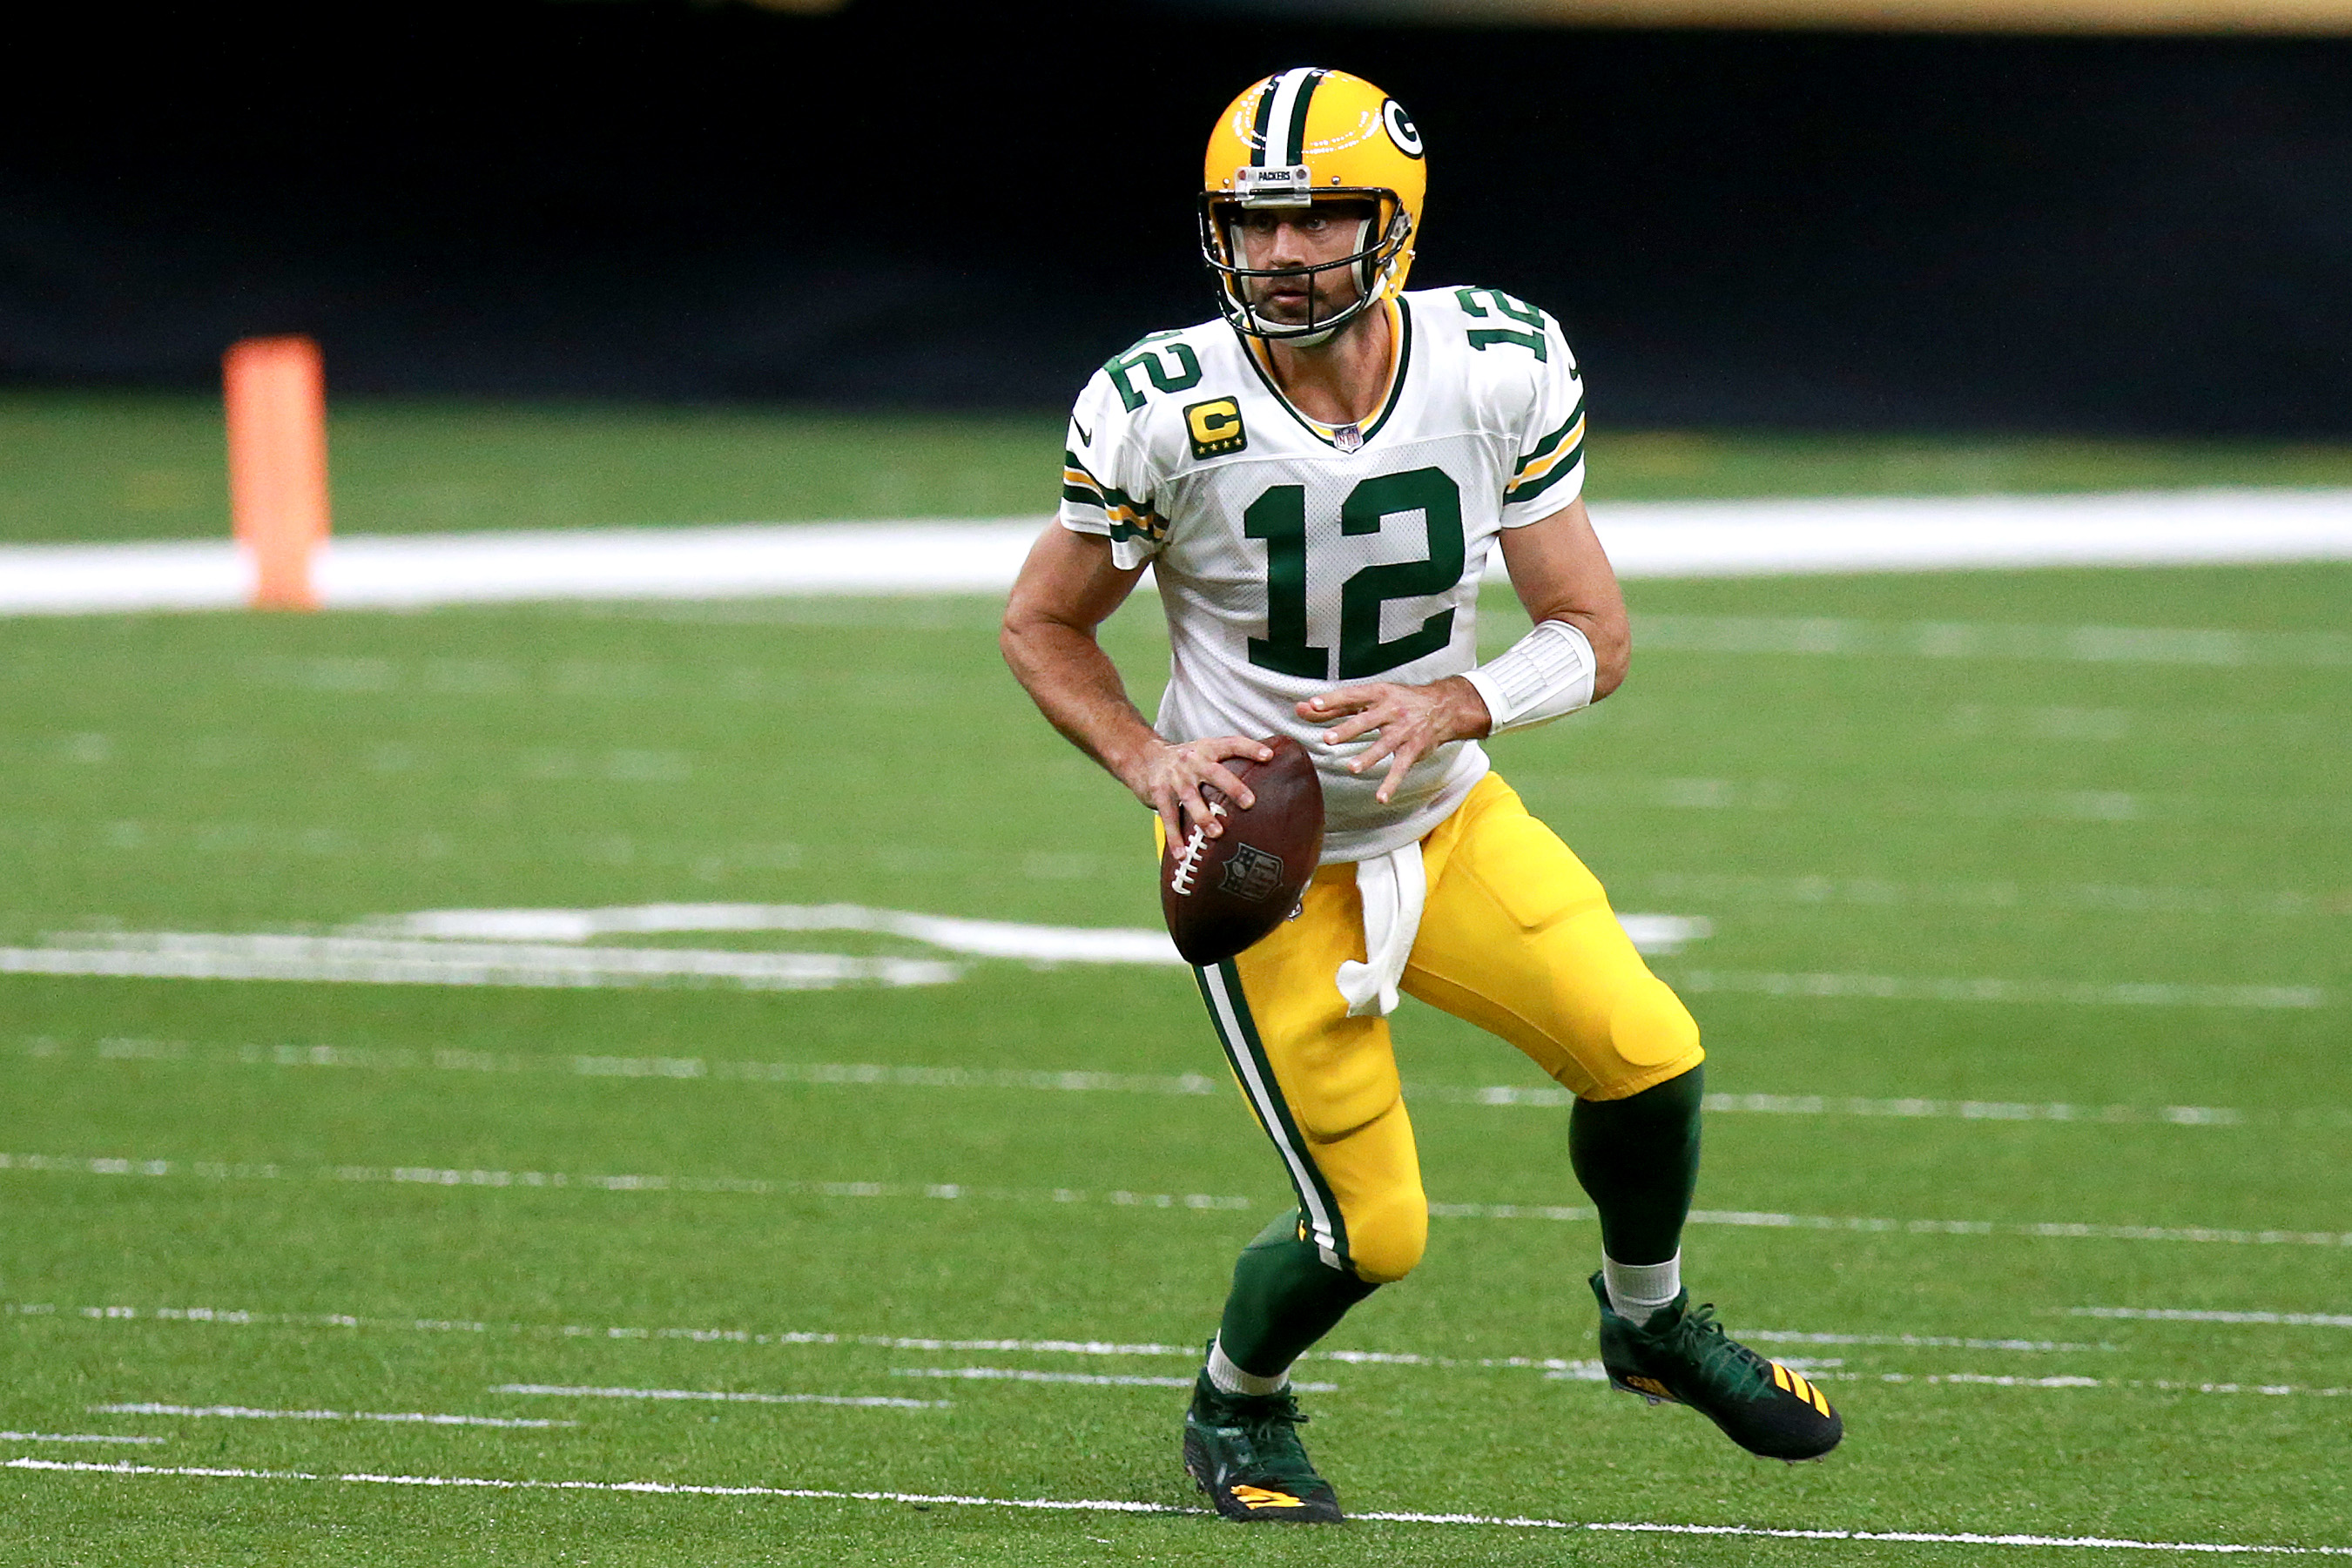 NFL: Aaron Rodgers leads Packers past Drew Brees, Saints